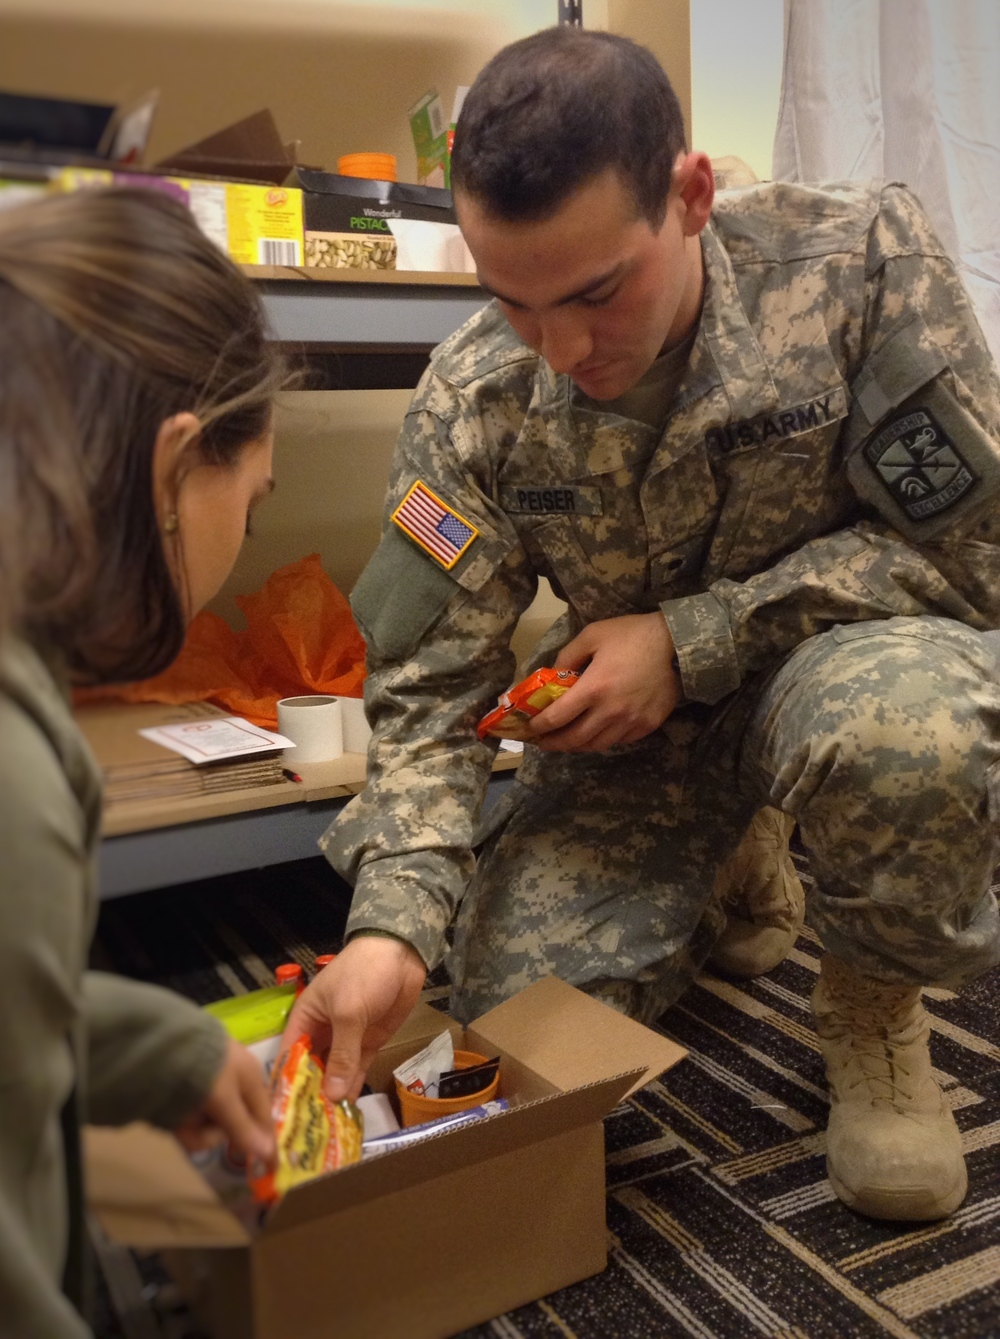 Peiser fills a Study Energy Box with packages of ramen noodles on February 18, 2016. in the Stuff in a Box Student Center office. The company shops in bulk at Walmart to buy supplies for the care packages. They have four different types of boxes: Fruit Box, Wellness Box, Study Energy Box and Tiger Box ranging from $10.99 to $29.99.